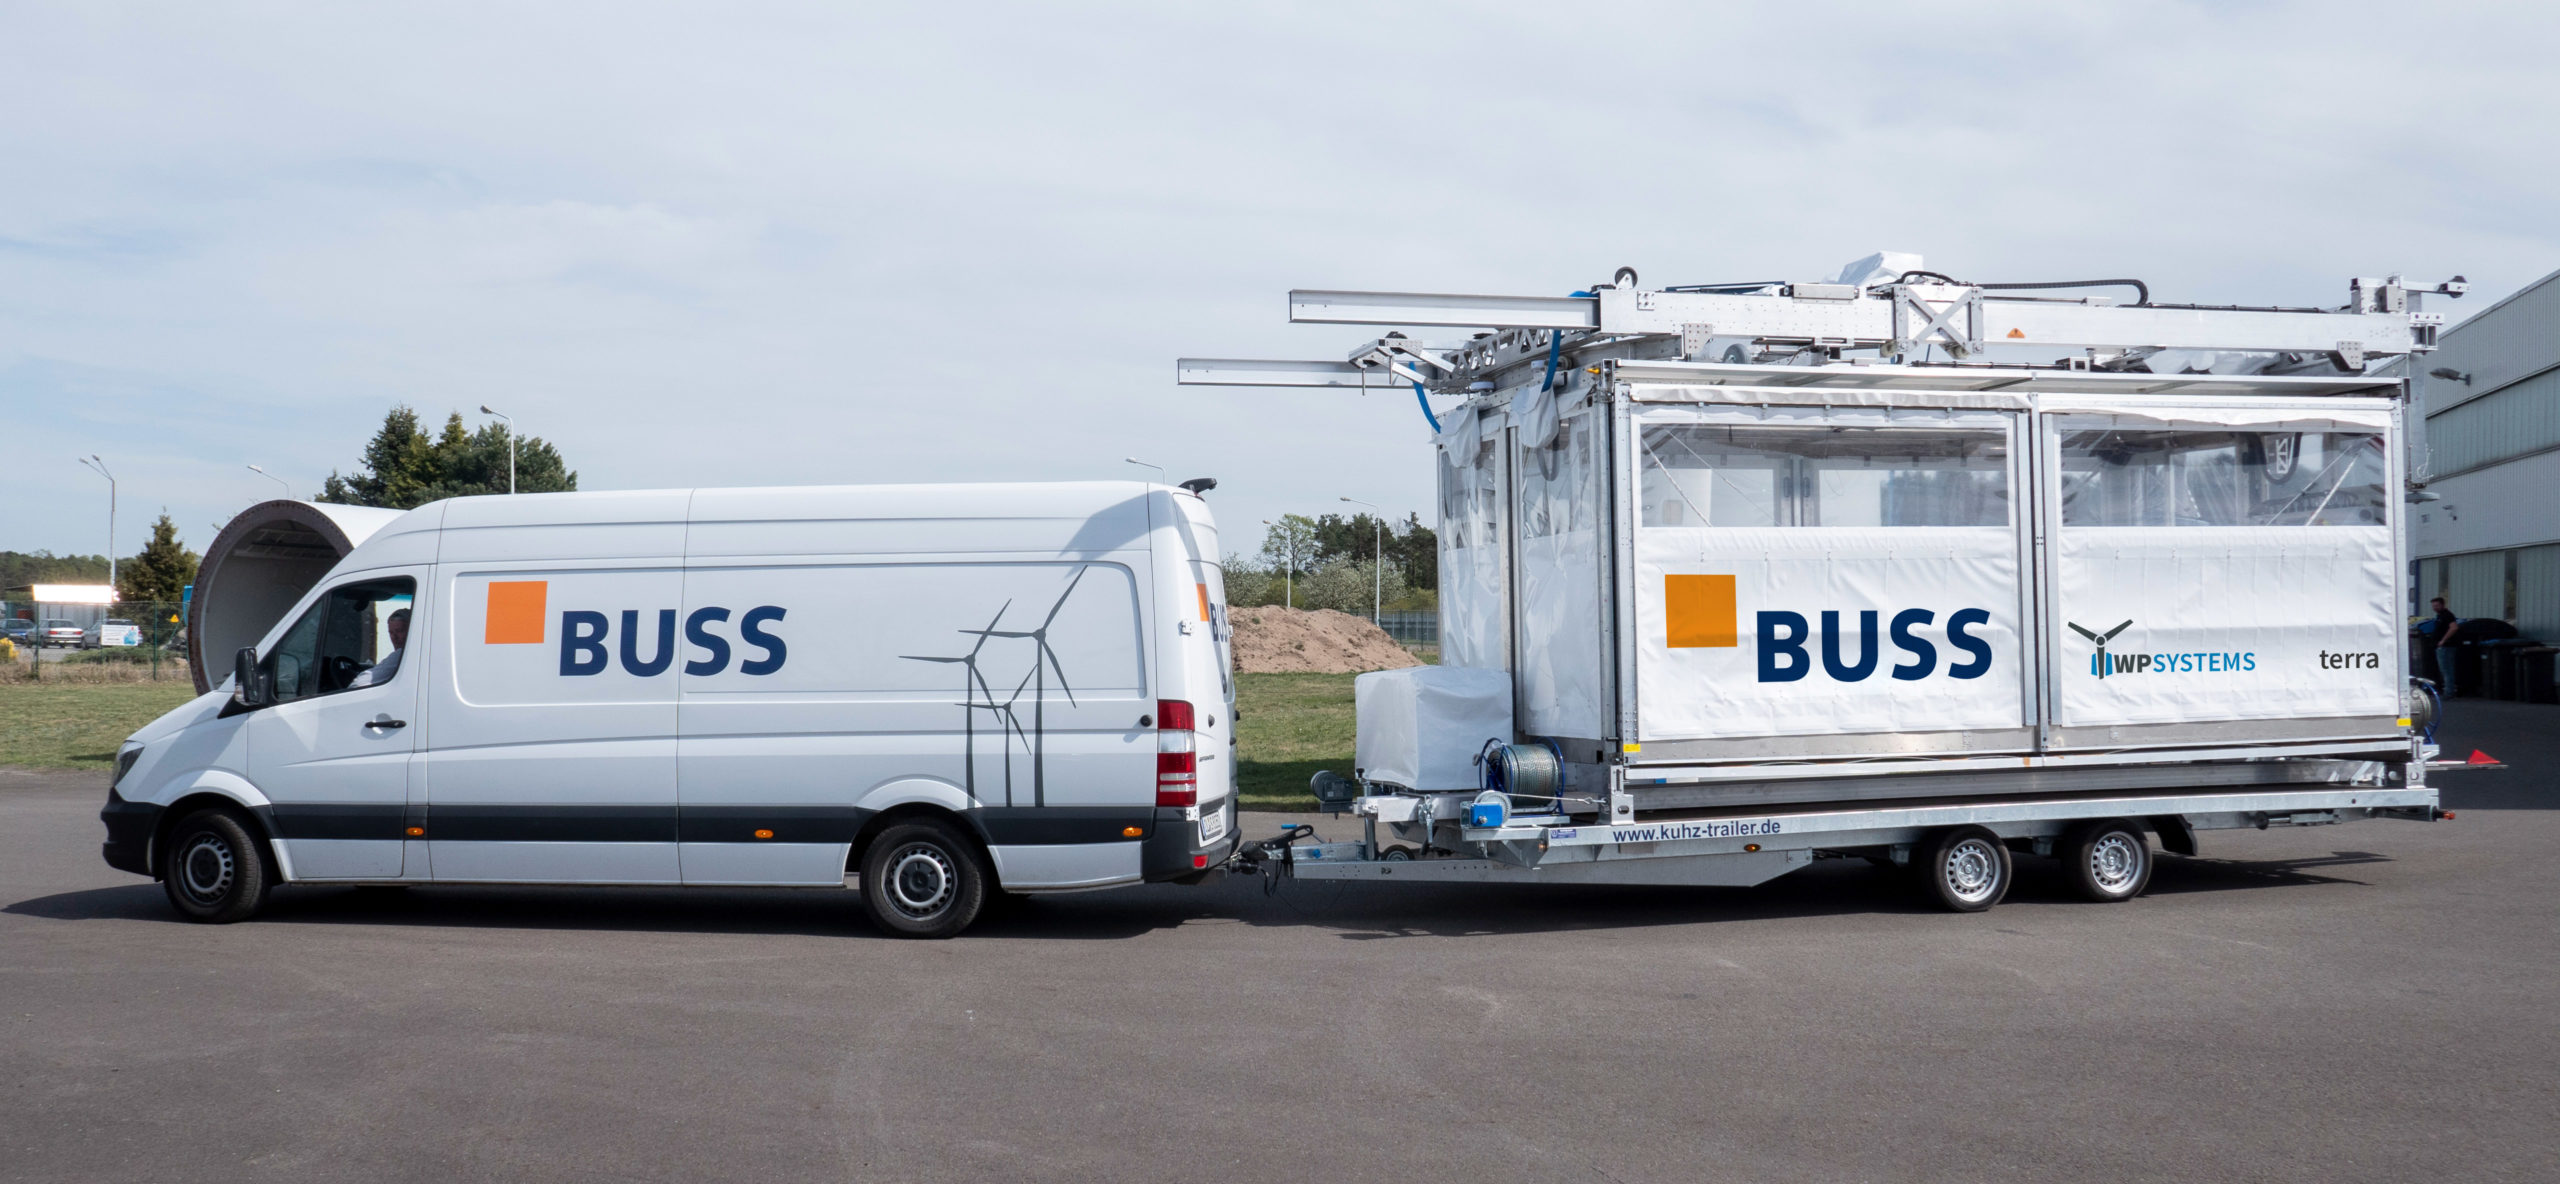 BUSS GmbH is a big customer of WP Systems